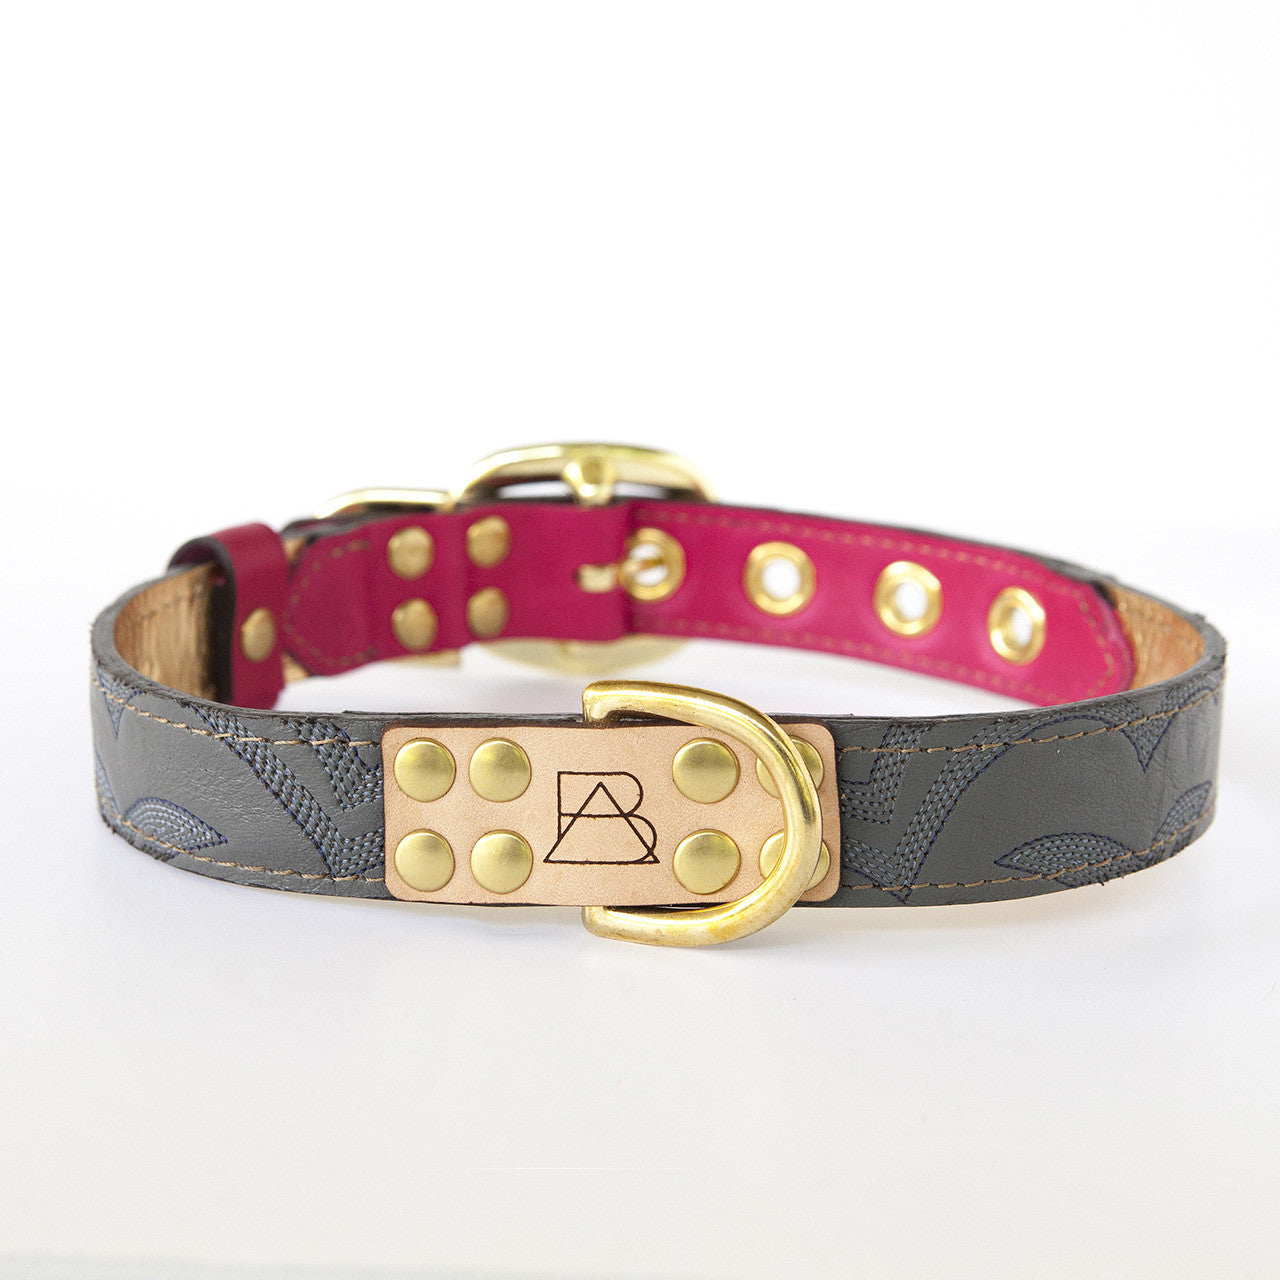 Hot Pink Dog Collar with Gray Leather + Navy Stitching (front view)